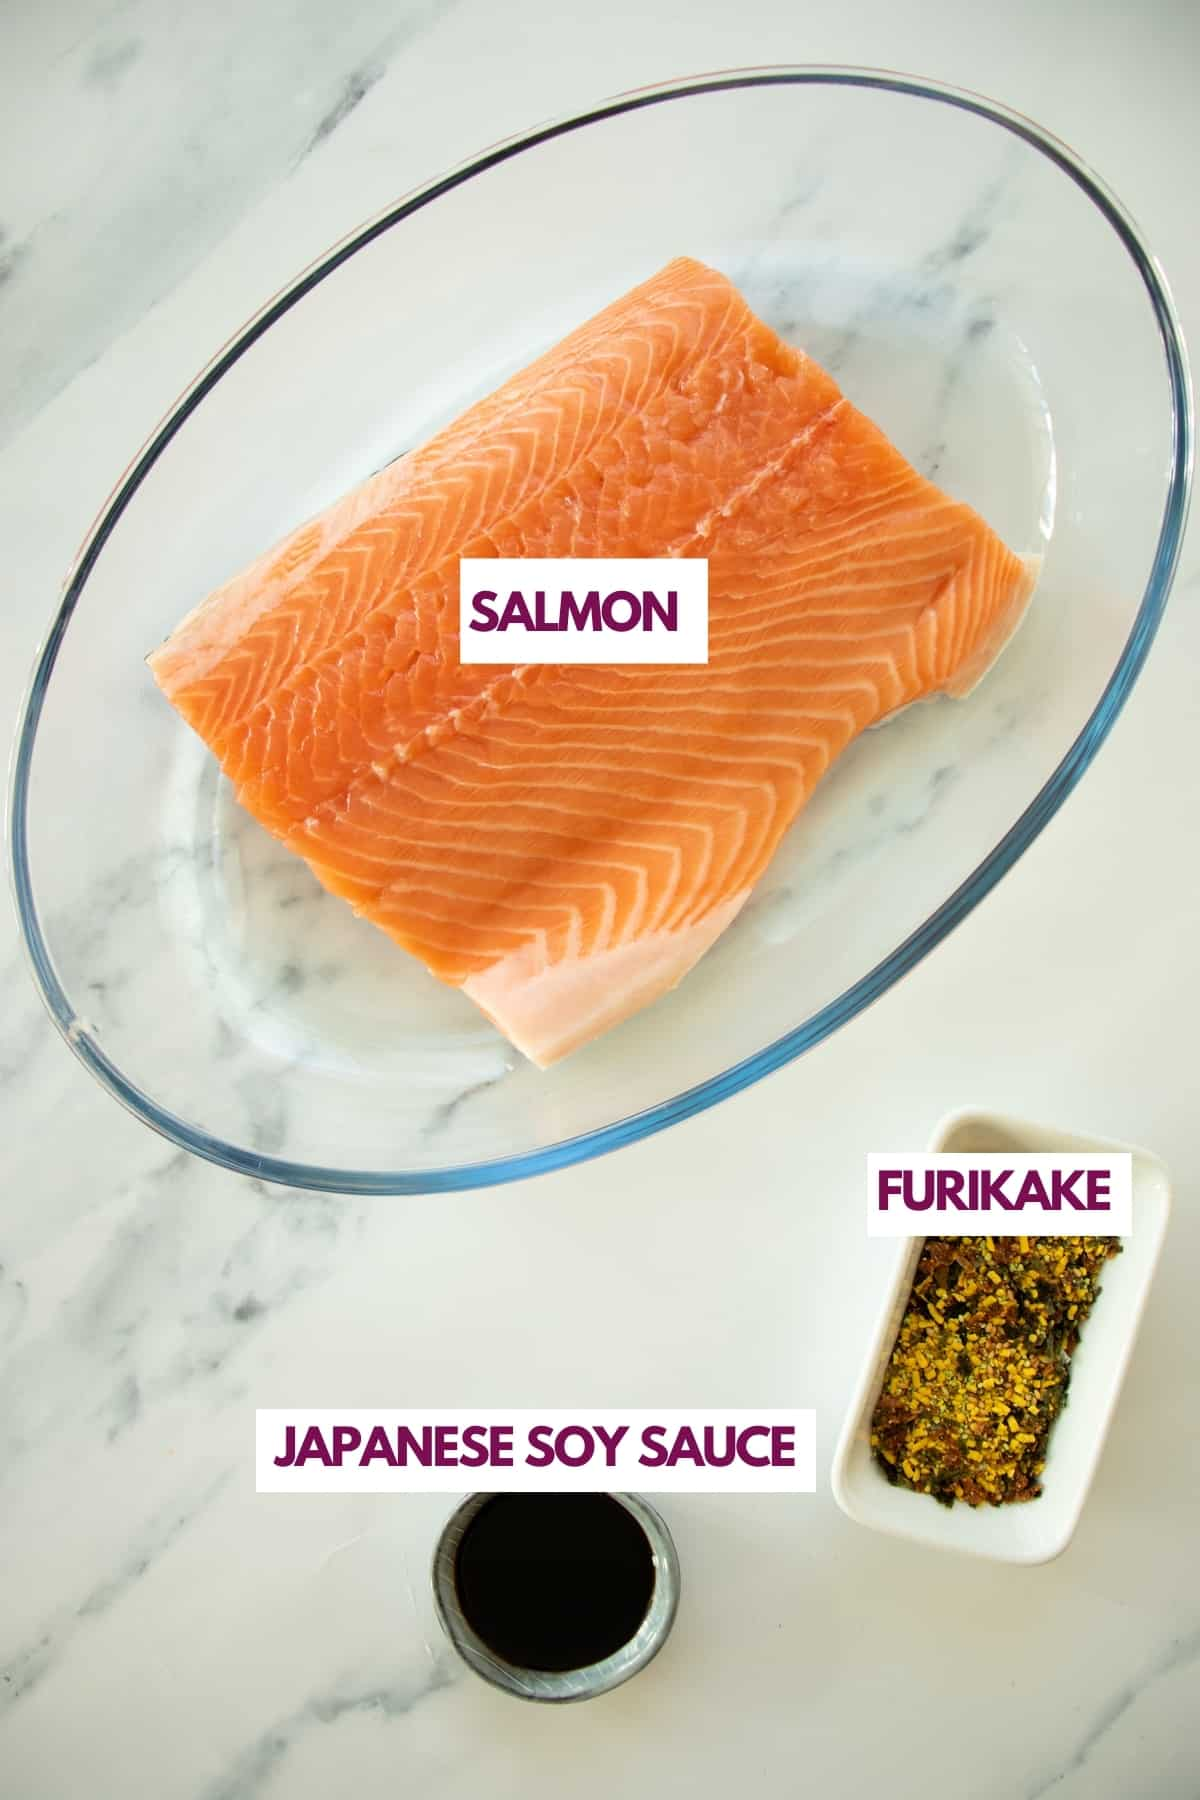 ingredients for furikake salmon